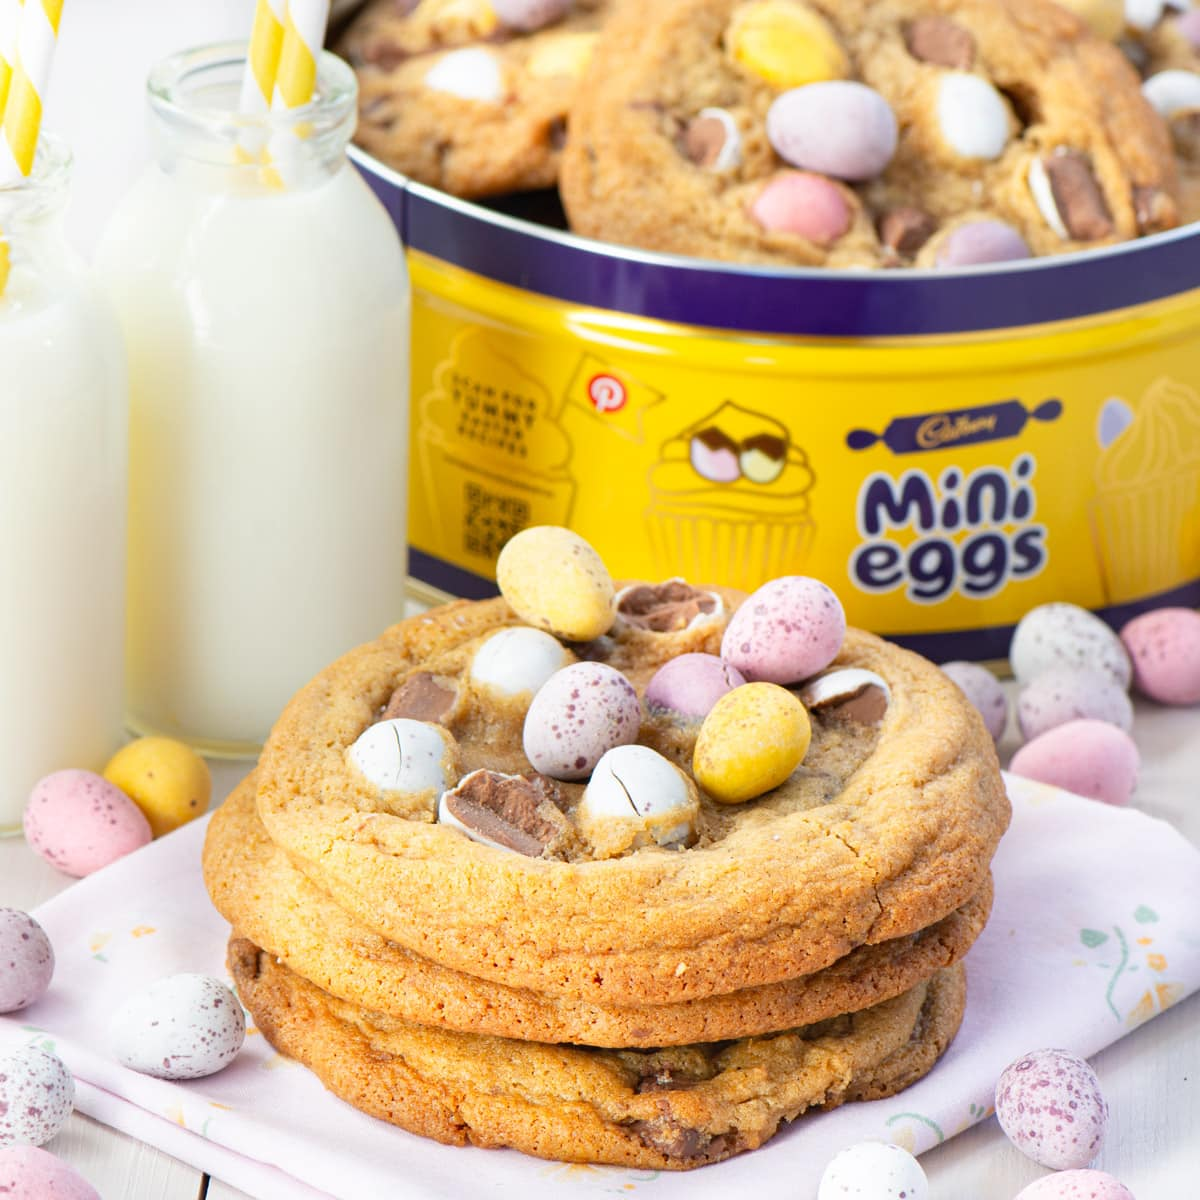 Mini egg cookies stacked in front of a mini egg tin with more cookies.